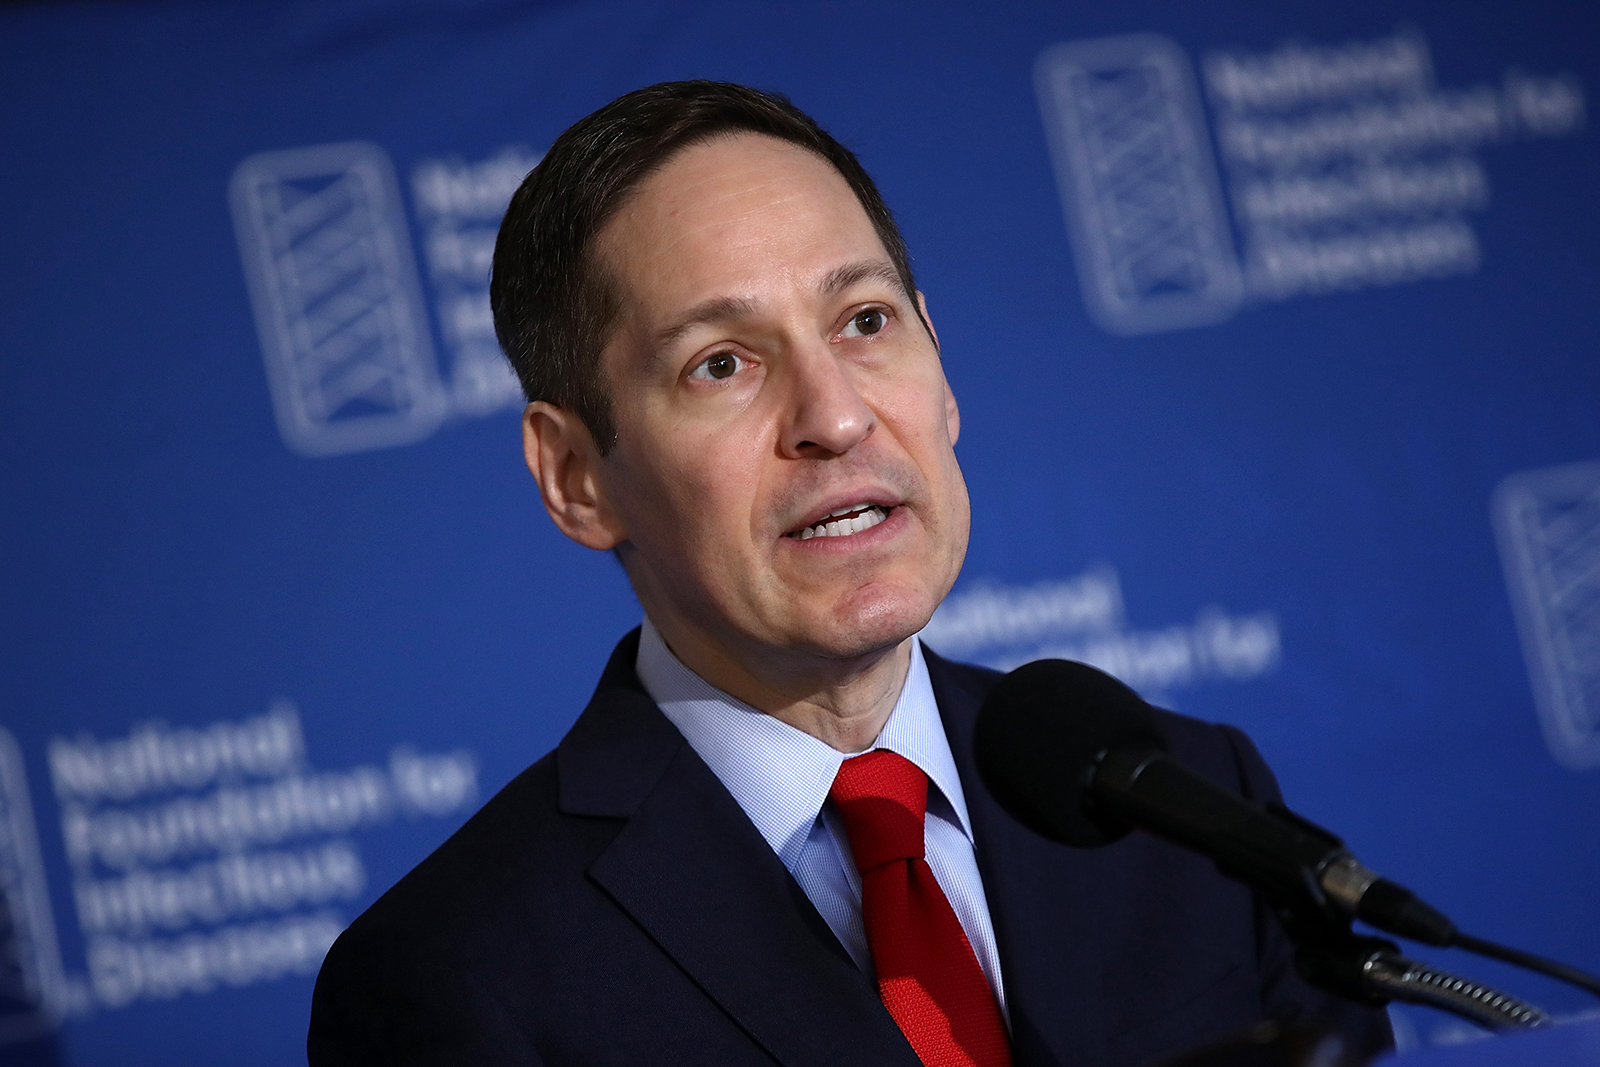 Dr. Tom Frieden, then director of the Centers for Disease Control and Prevention, delivers remarks during a press conference in Washington, on September 29, 2016.